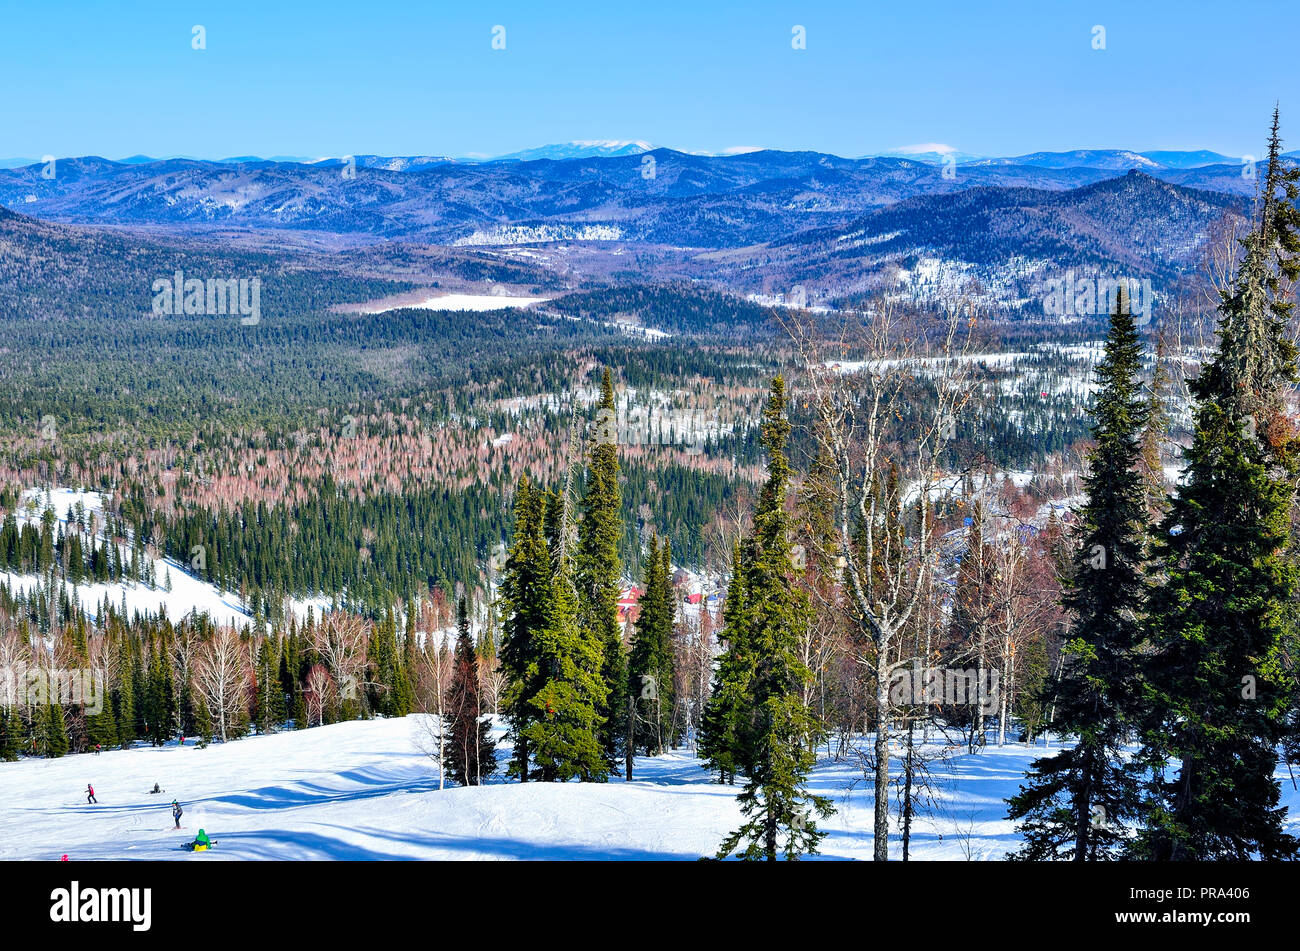 Sunny winter mountain landscape at ski resort Sheregesh, Russia. Slopes of mountains and valley covered with coniferous forest, bright sun, fluffy whi - Stock Image